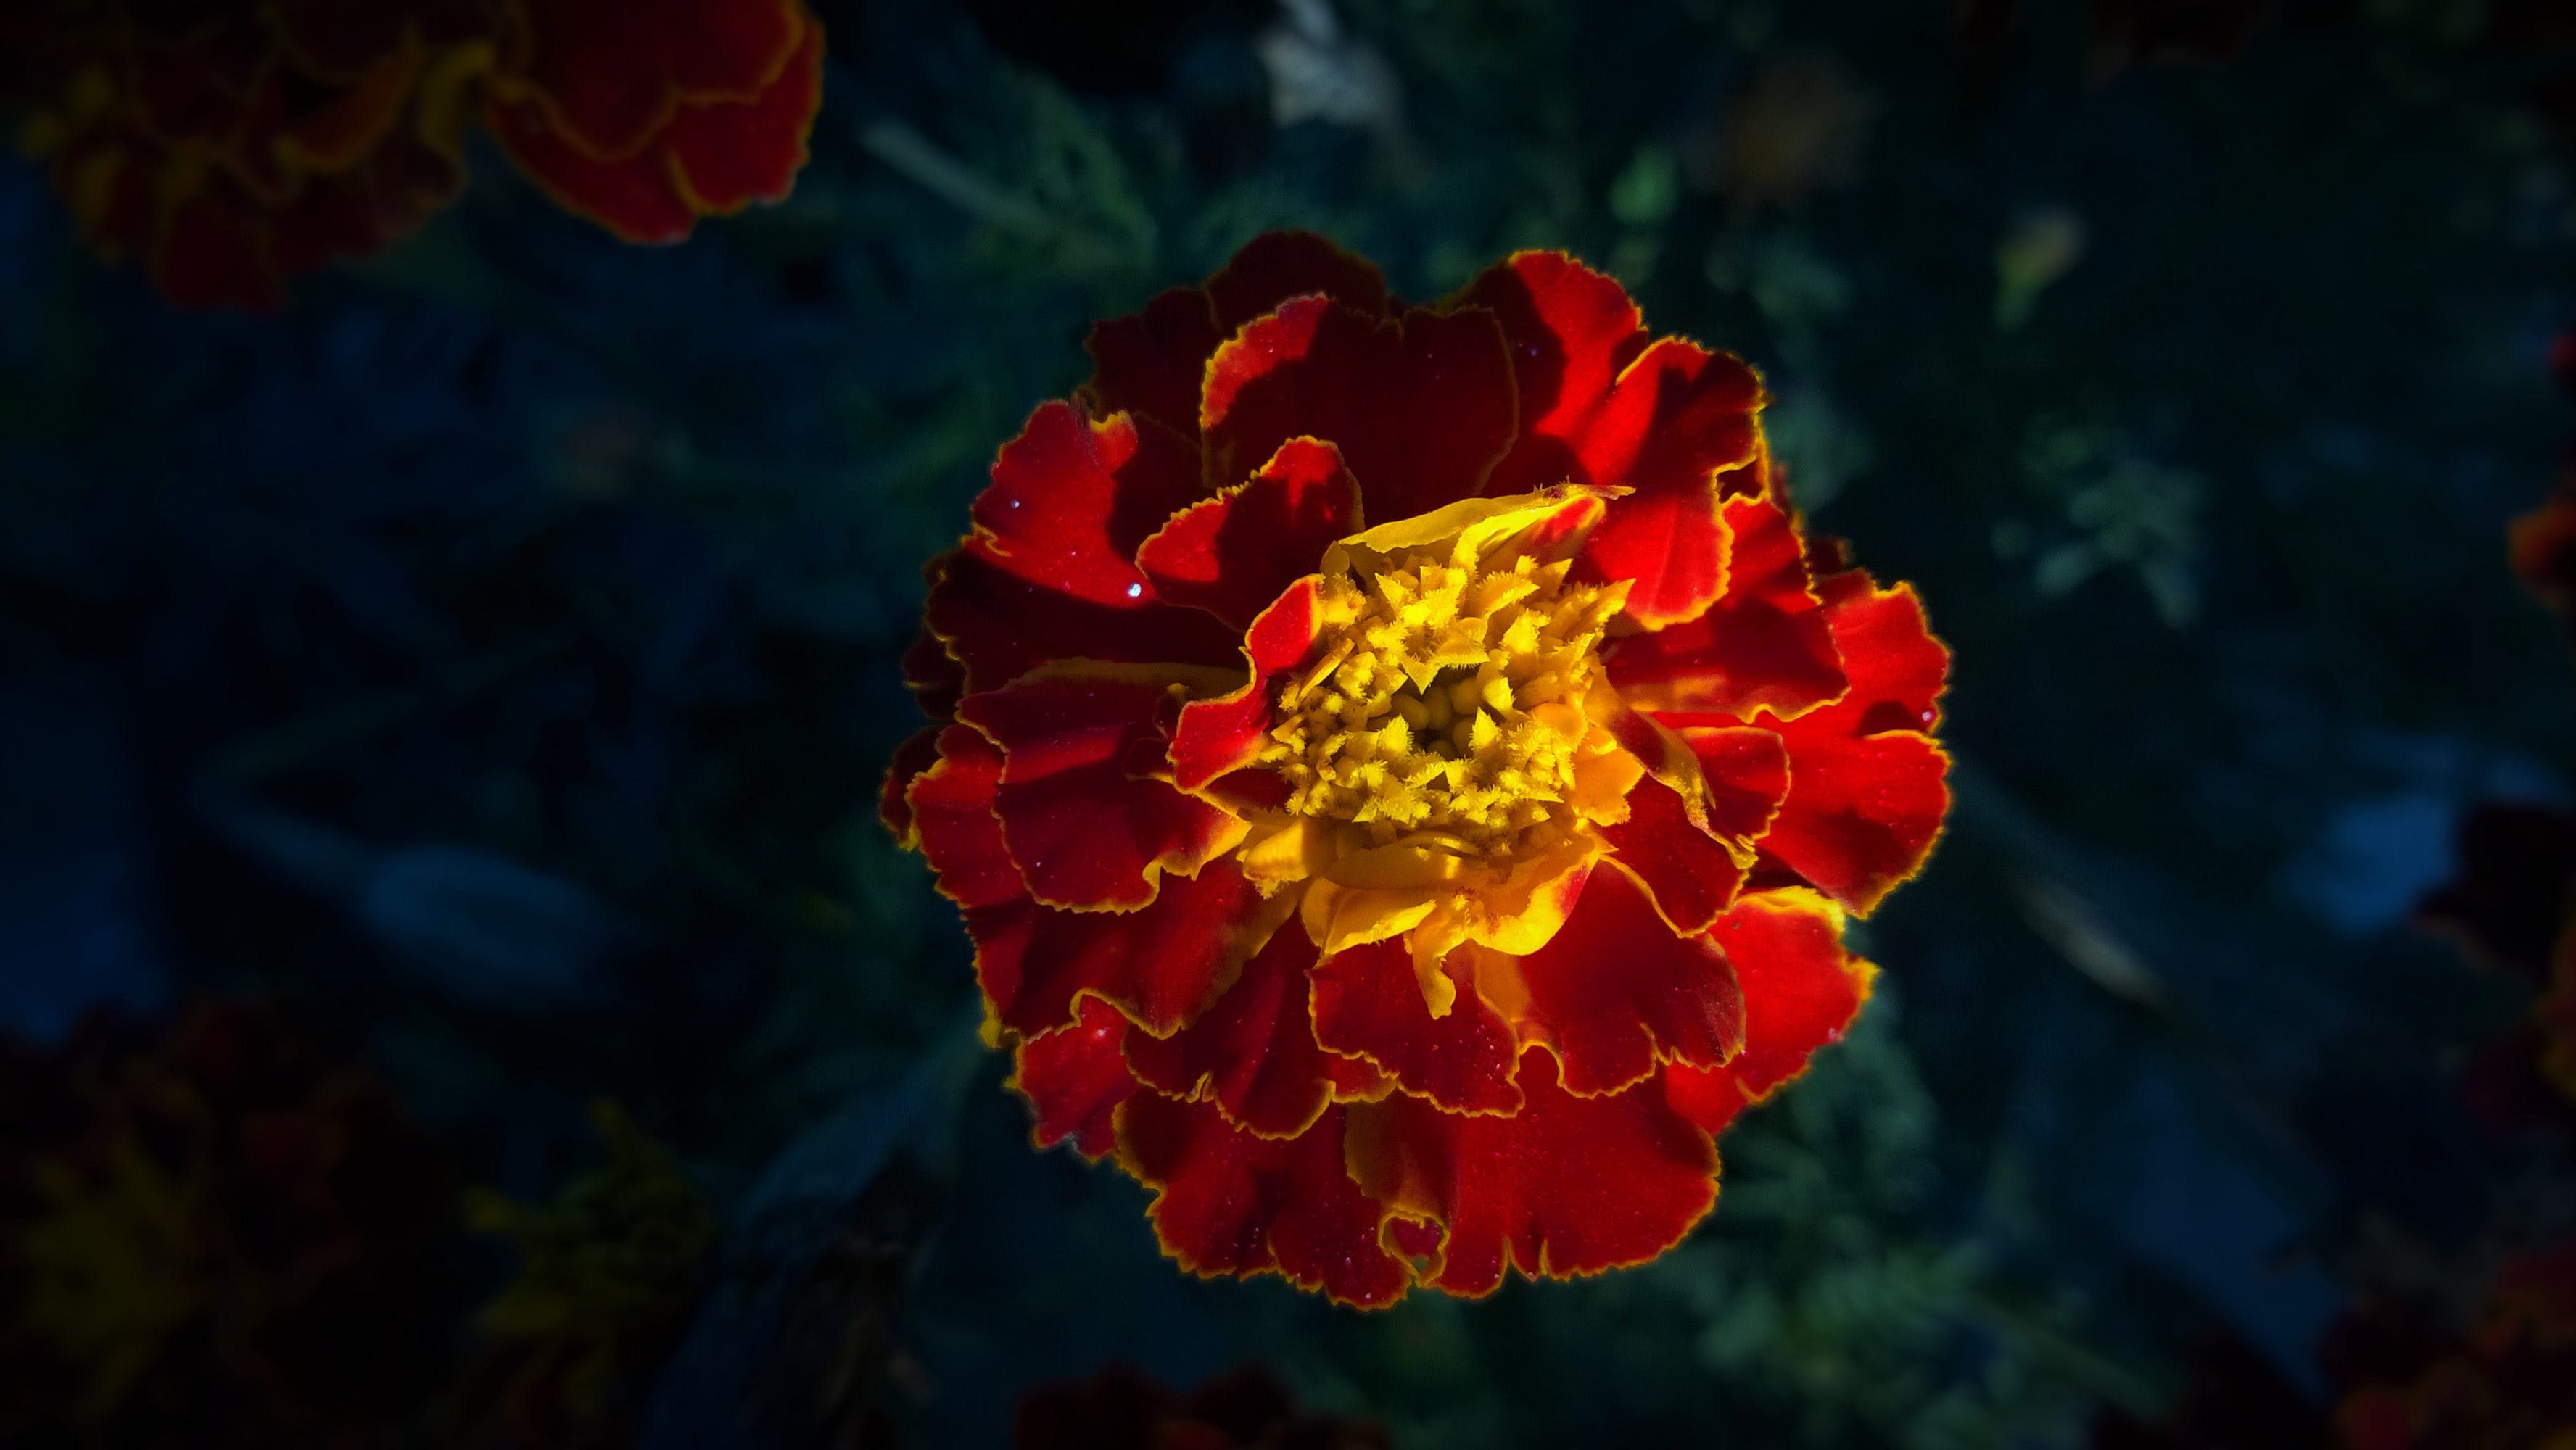 Red and Yellow Full Bloomed Flower